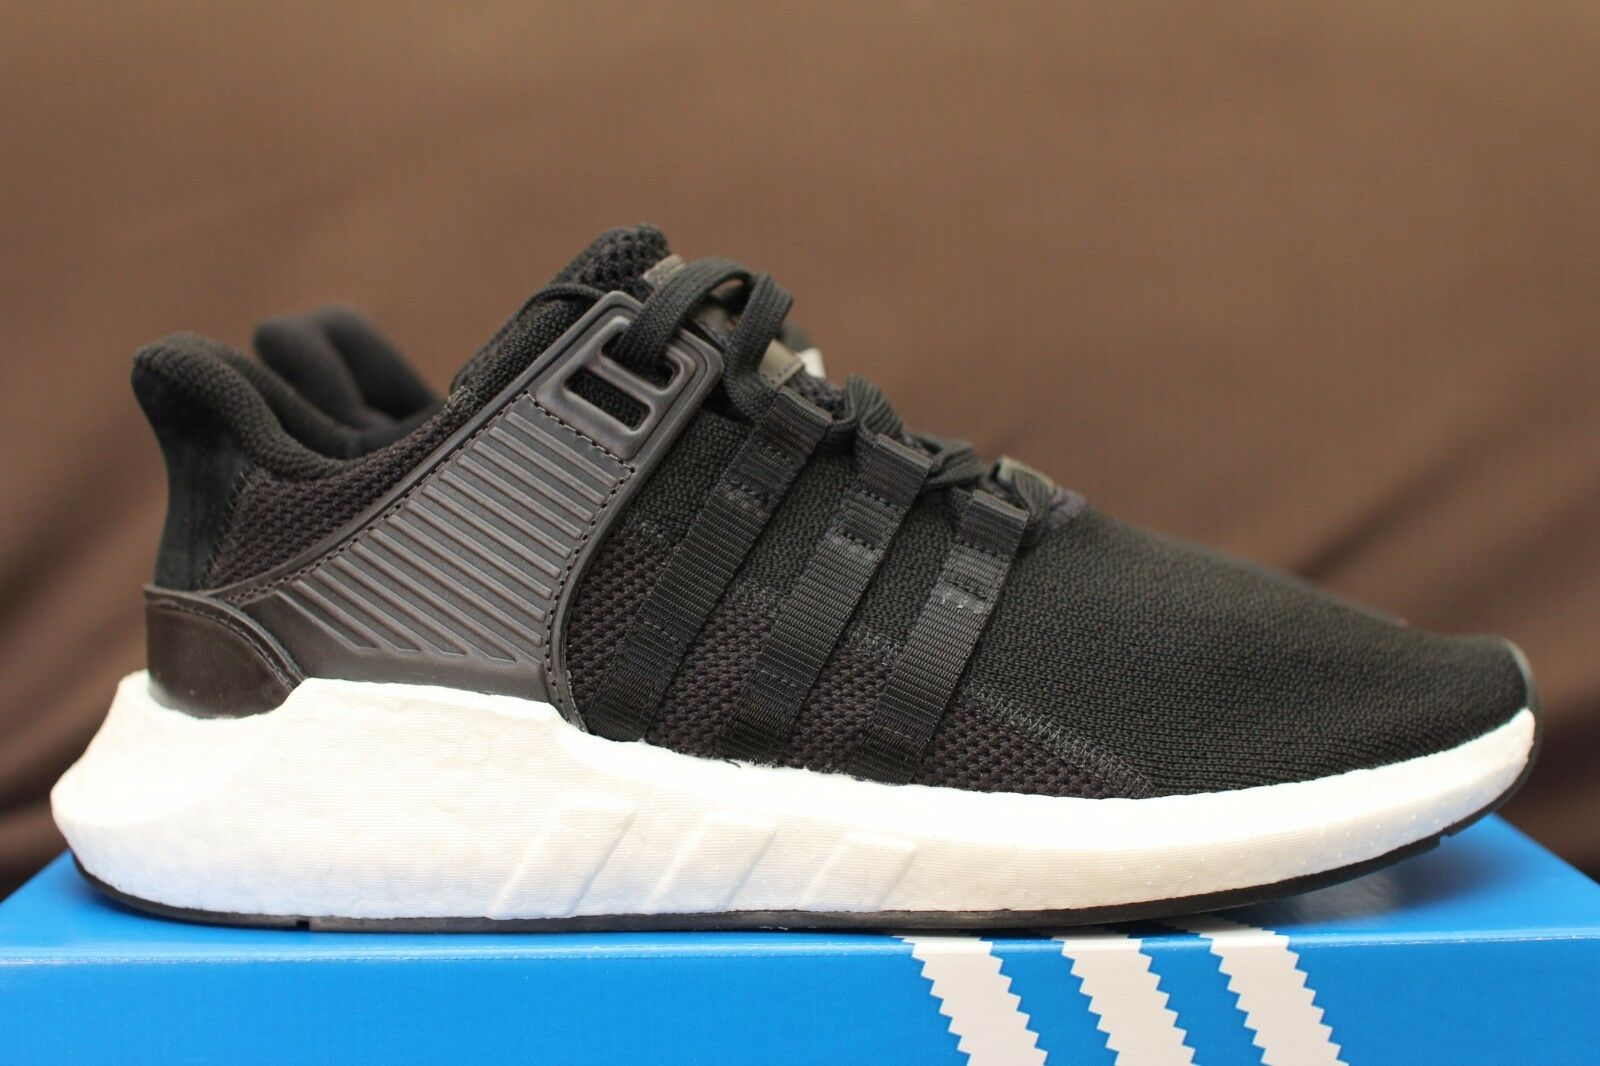 Adidas EQT Support 93 17 Milled Leather Size 10.5 BB1236